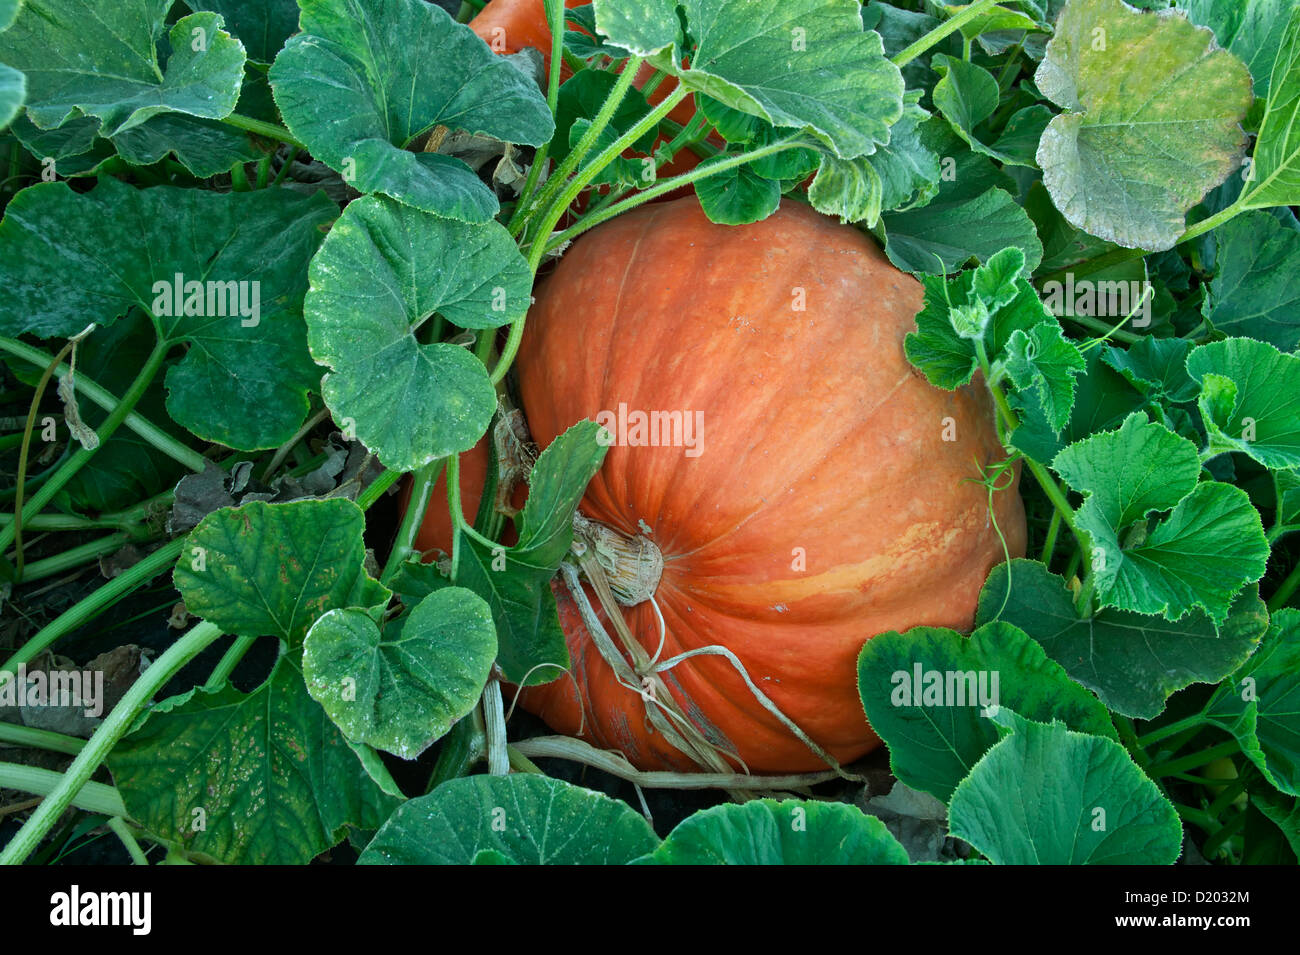 Pumpkin  'Big Max' growing on vine. - Stock Image